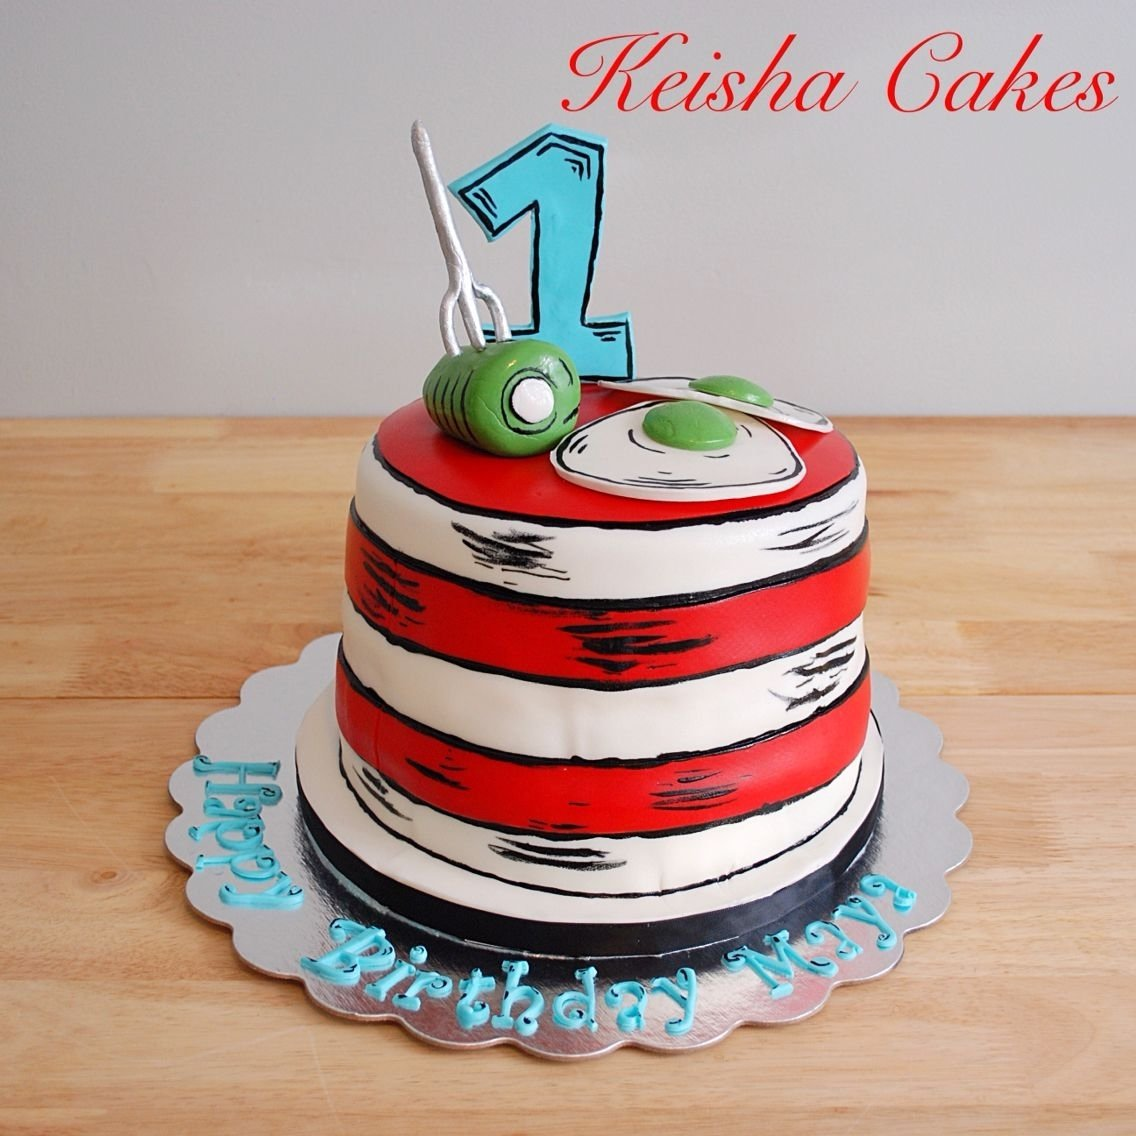 10 Attractive Cat In The Hat Cake Ideas dr seuss cat in the hat birthday cake green eggs and ham on top of 1